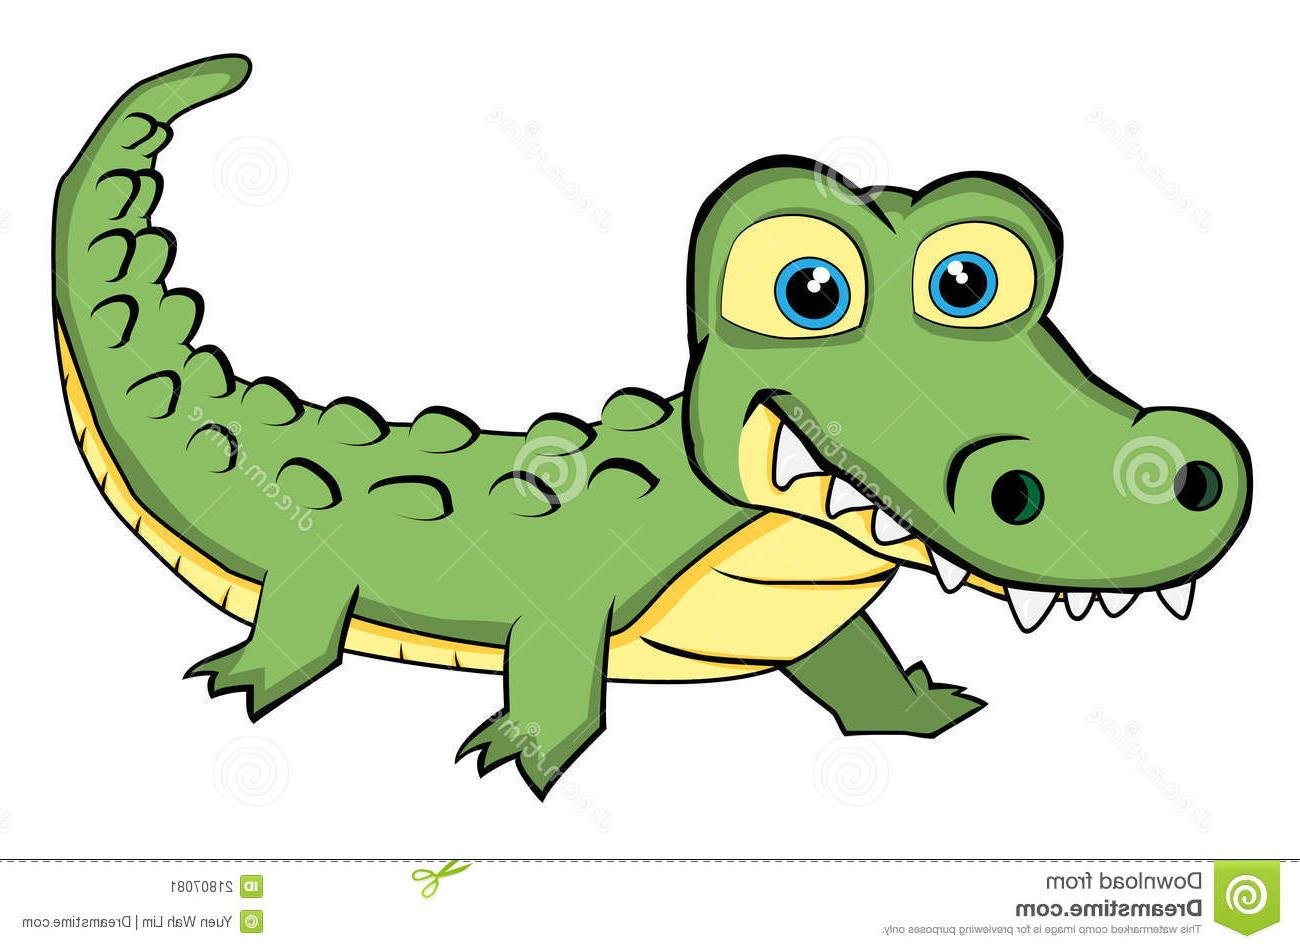 Crocodile clipart images 9 » Clipart Station.